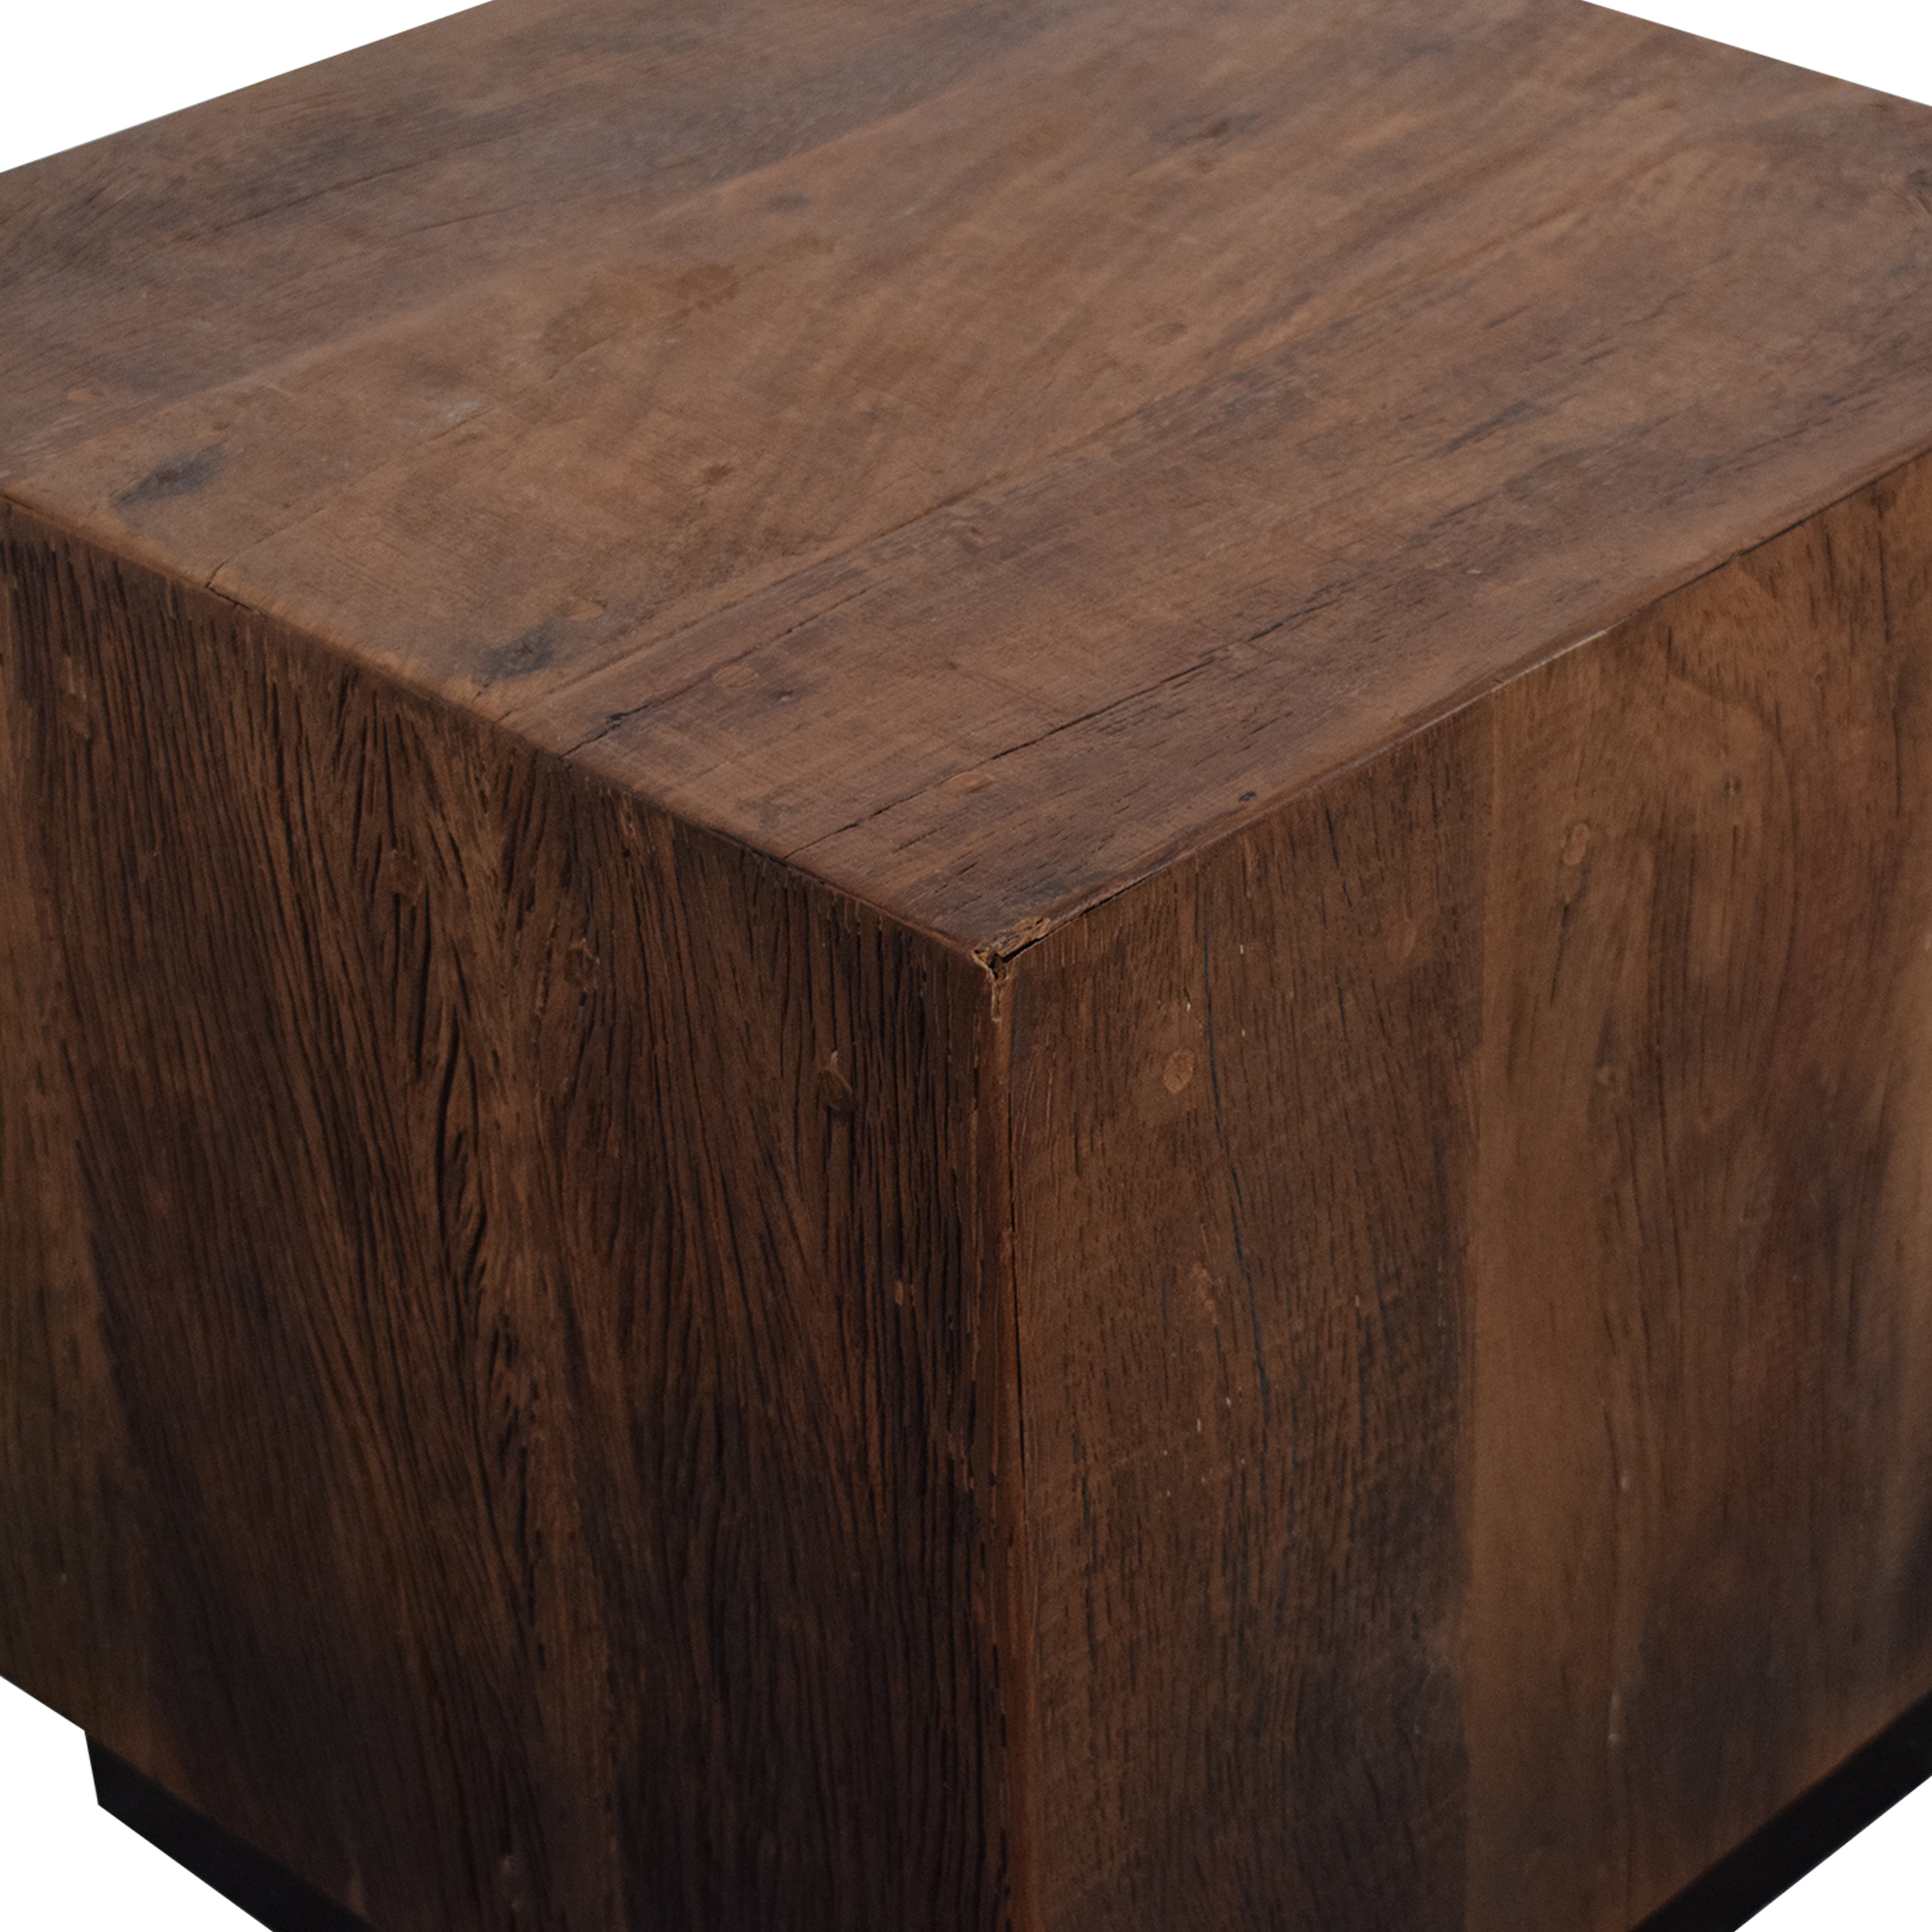 buy Environment Furniture Environment Furniture Cube End Table online